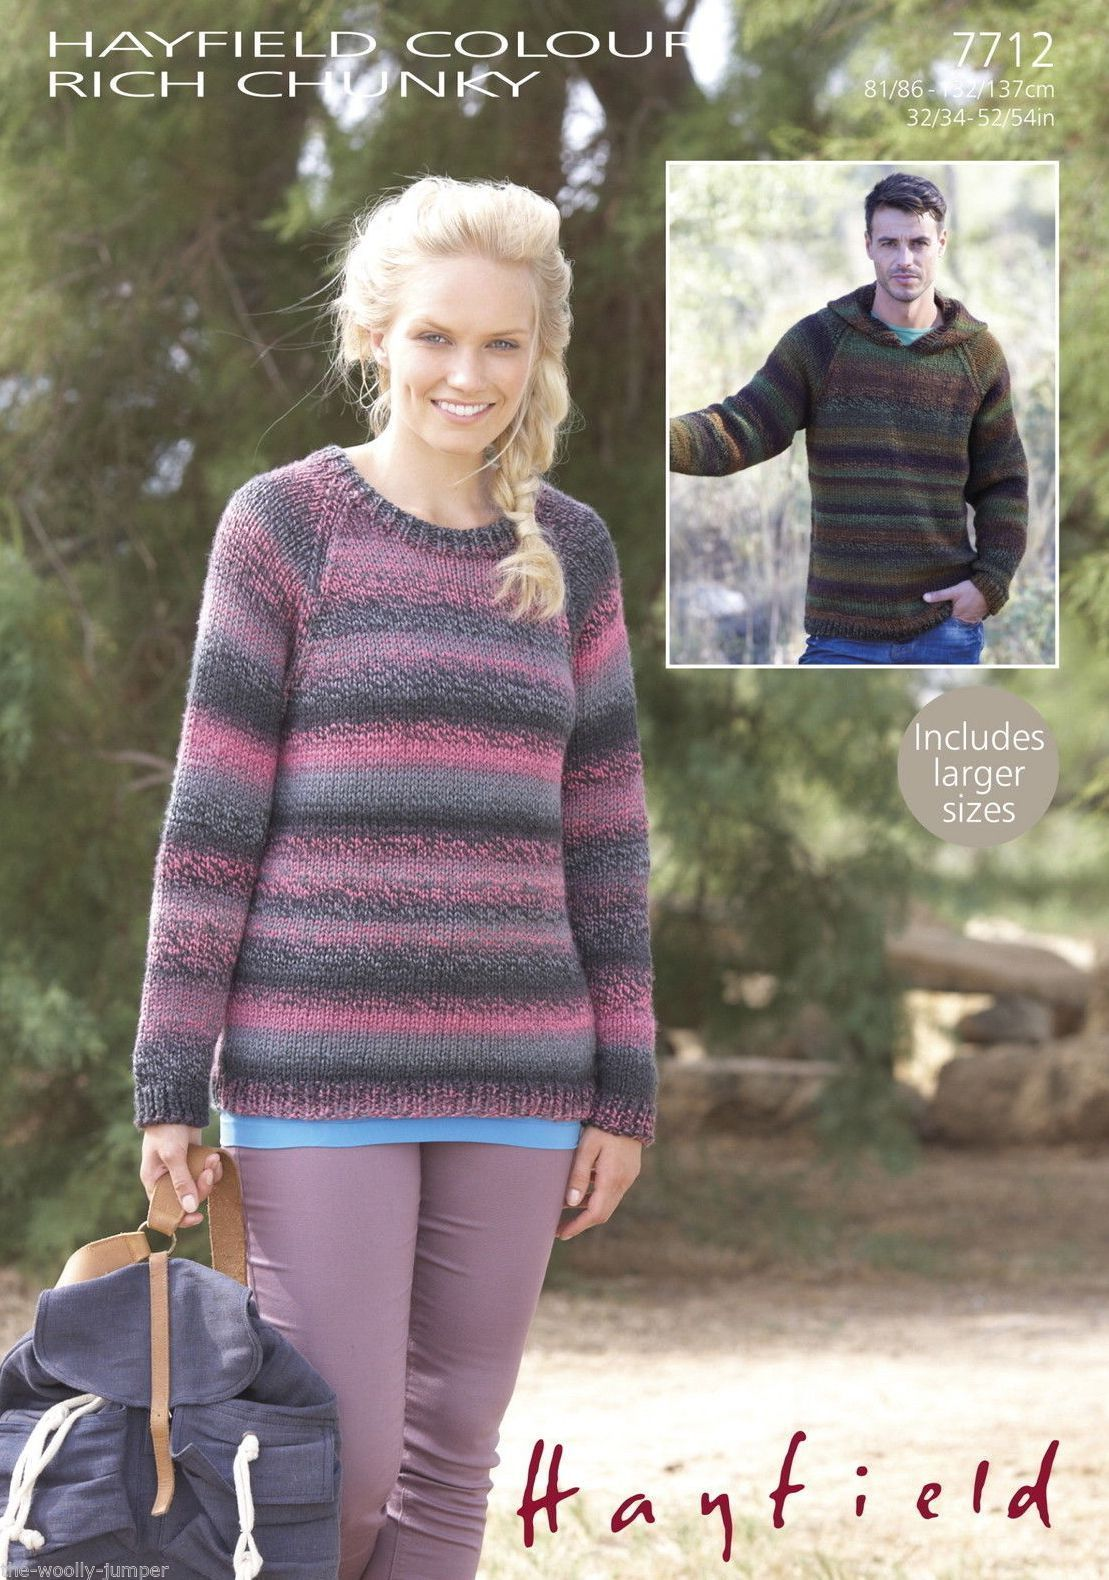 7712 - HAYFIELD COLOUR RICH CHUNKY SWEATER KNITTING PATTERN - TO FIT ...